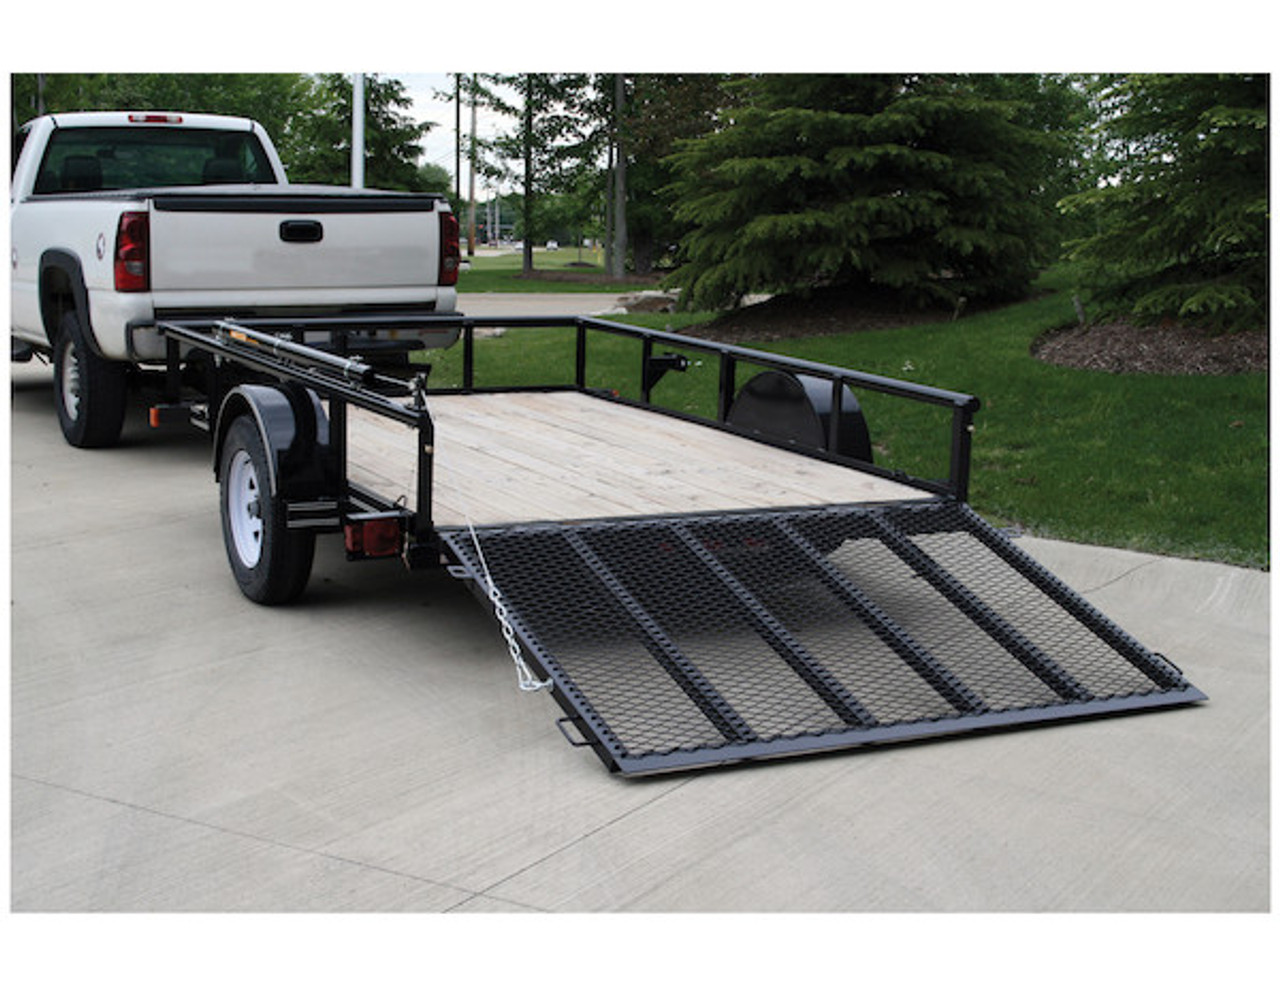 Buyers 5201000 EZ Gate™ Tailgate Assist for Landscaping Trailers and Open Style Trailers Picture # 2